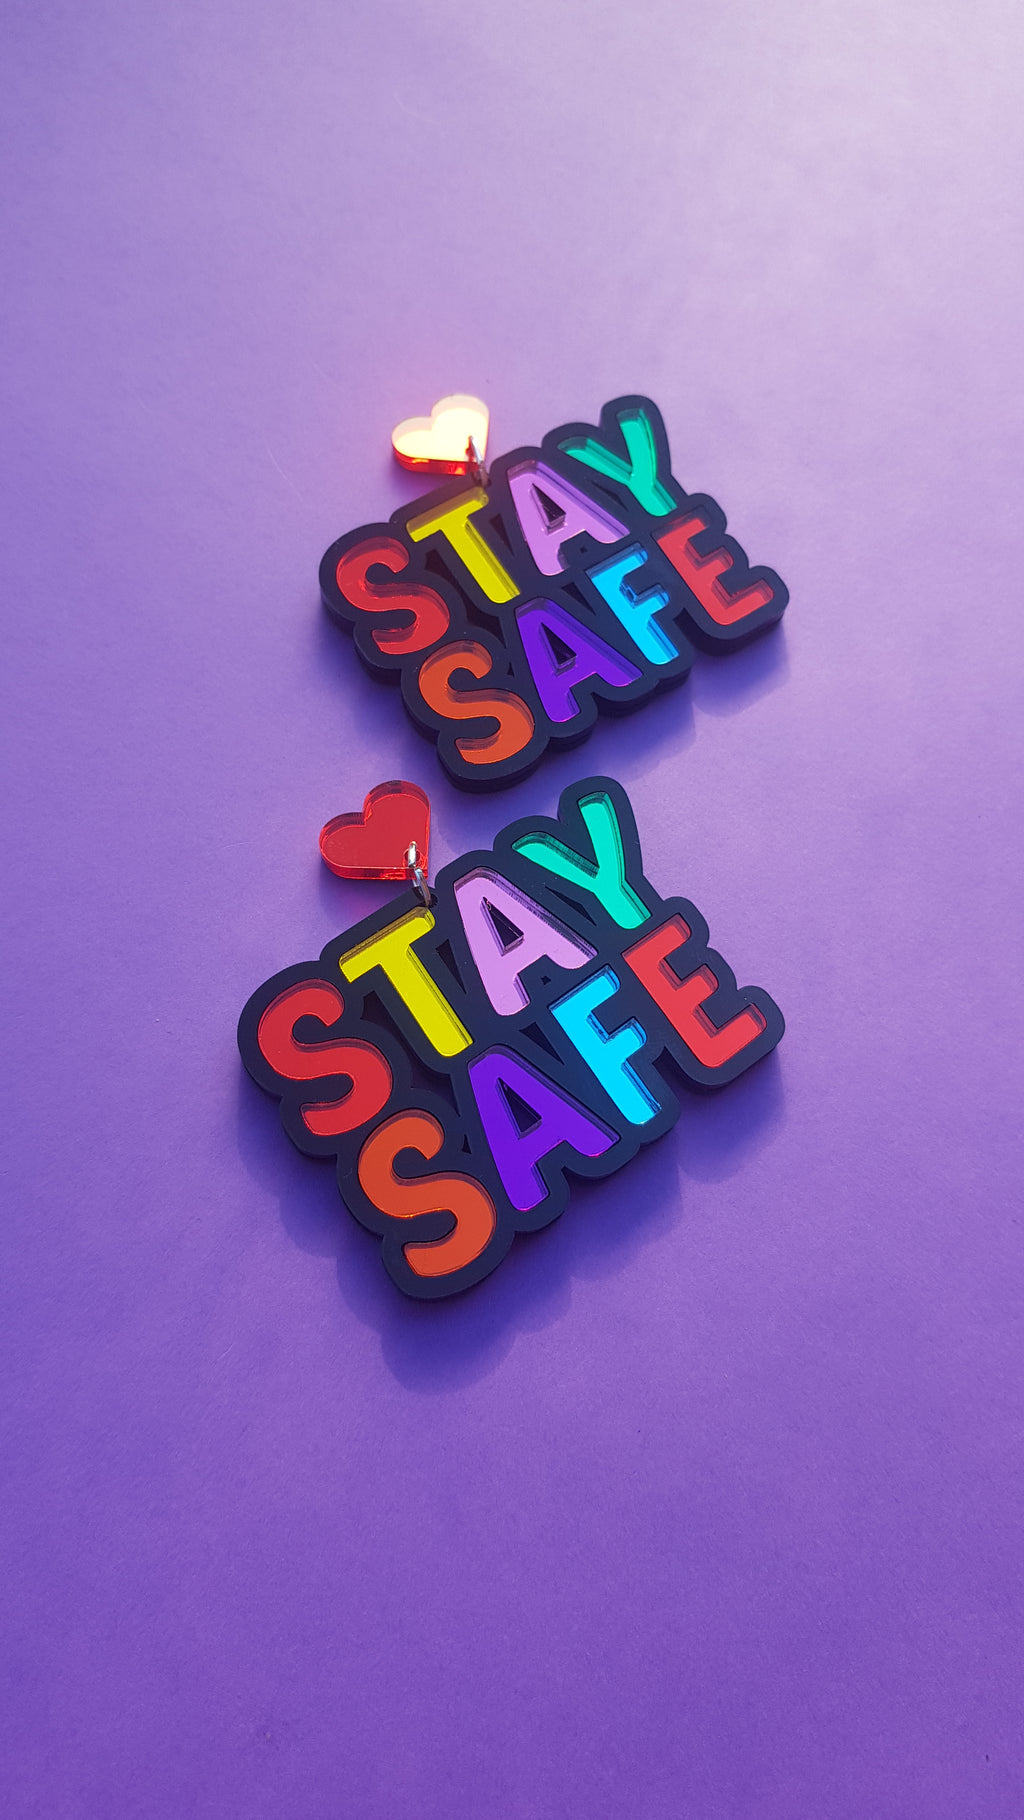 Stay Safe earrings/necklace